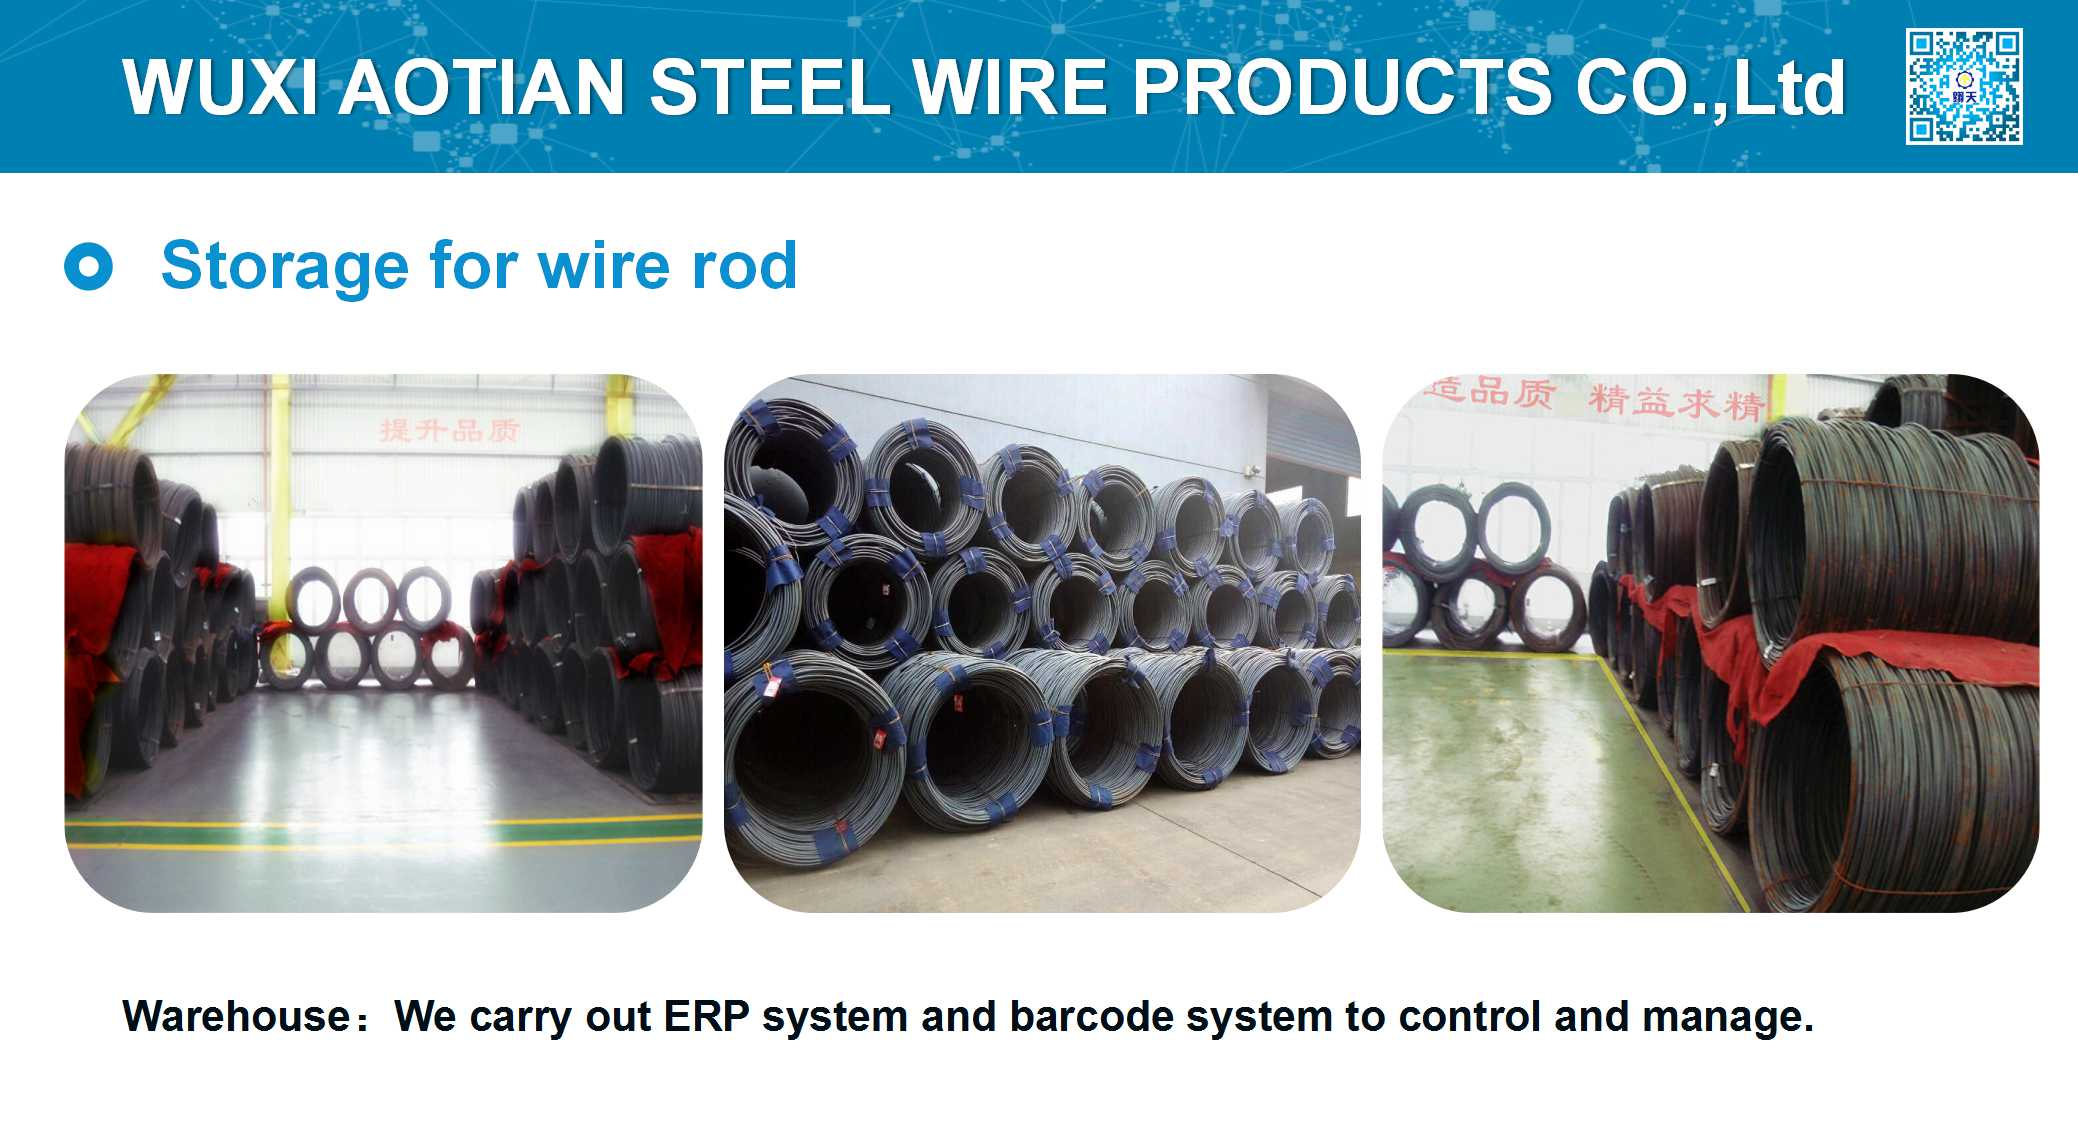 Storage of wire rod